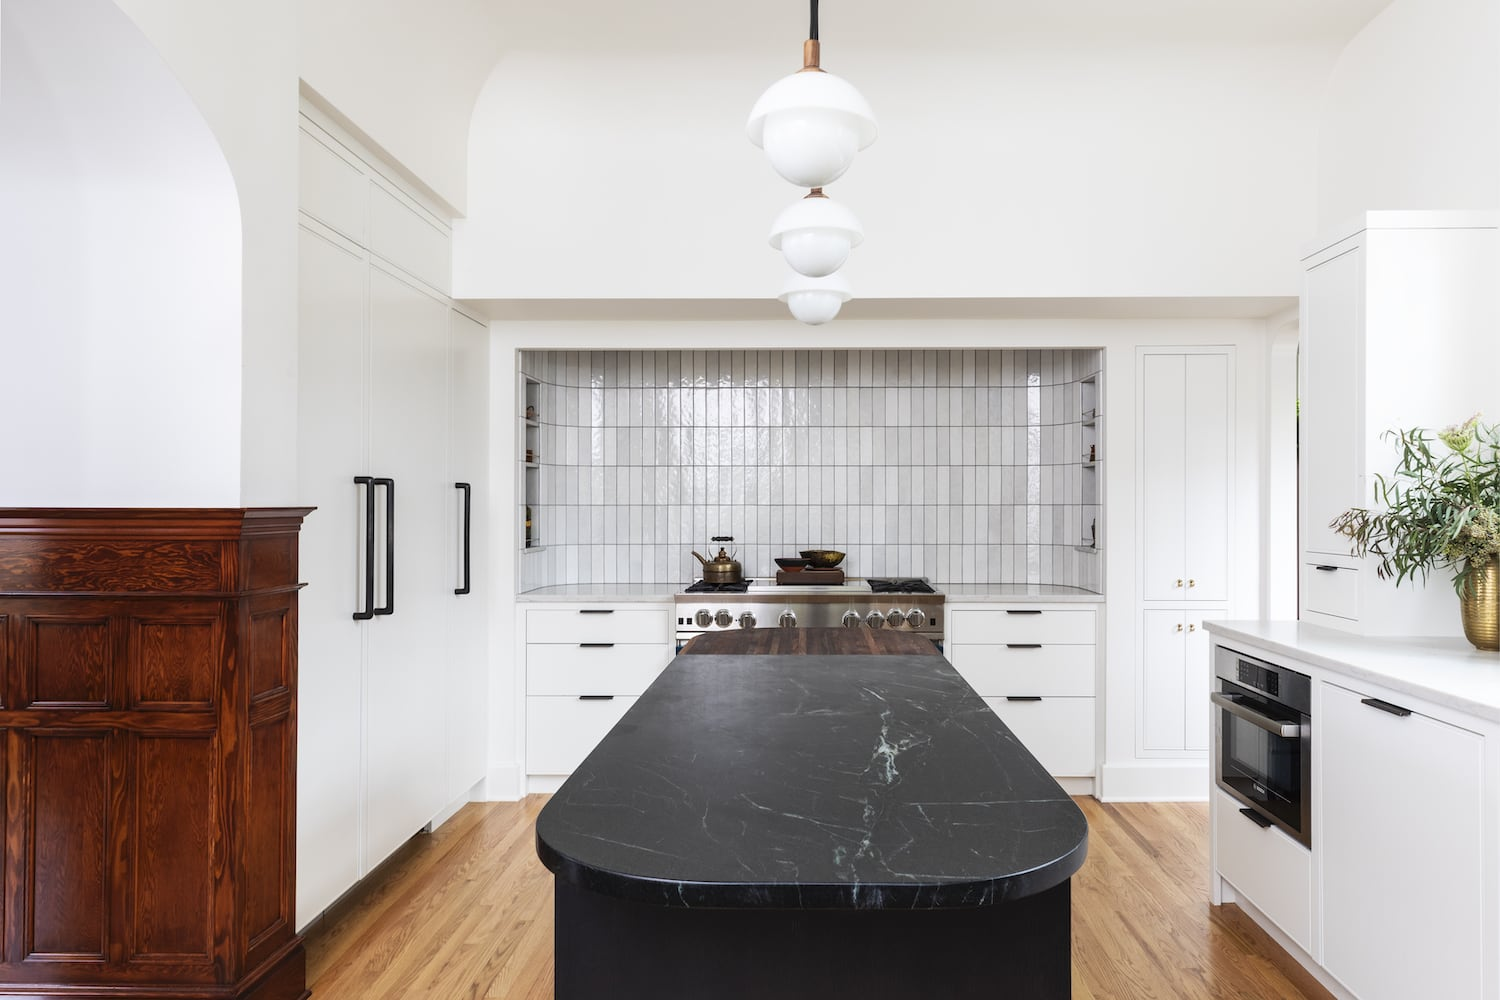 Willamette Heights - traditional white kitchen, black curved island, range alcove, pendant lights